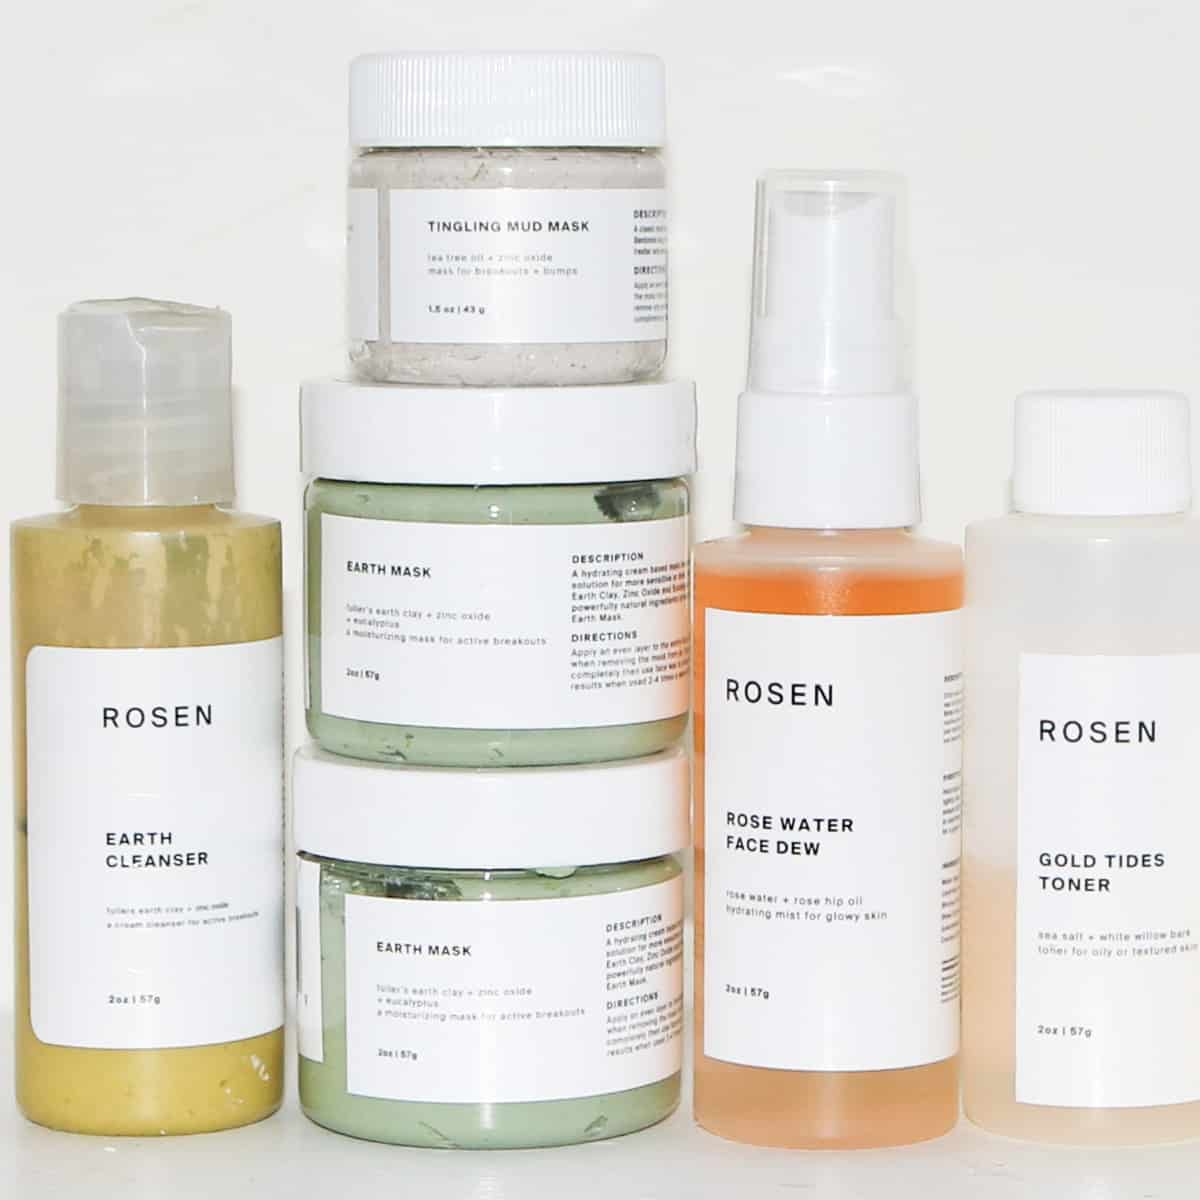 rosen skincare shelfie featuring earth cleanser, tingling mud mask, earth mask, face dew and gold tides toner